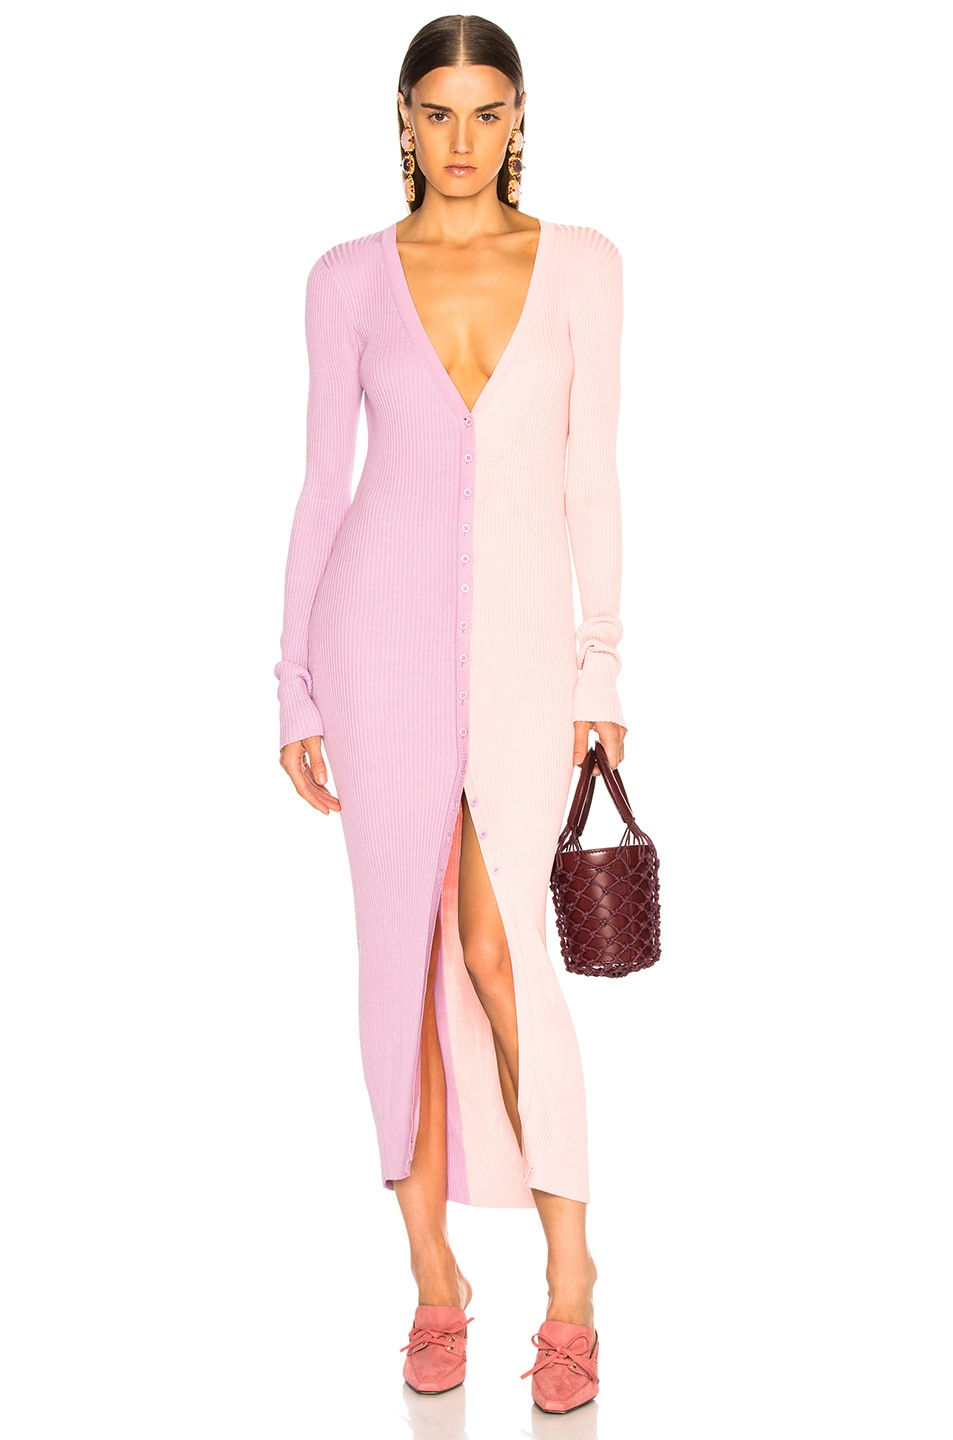 Image 1 of Staud Shoko Dress in Orchid   Rose 01561ac99e